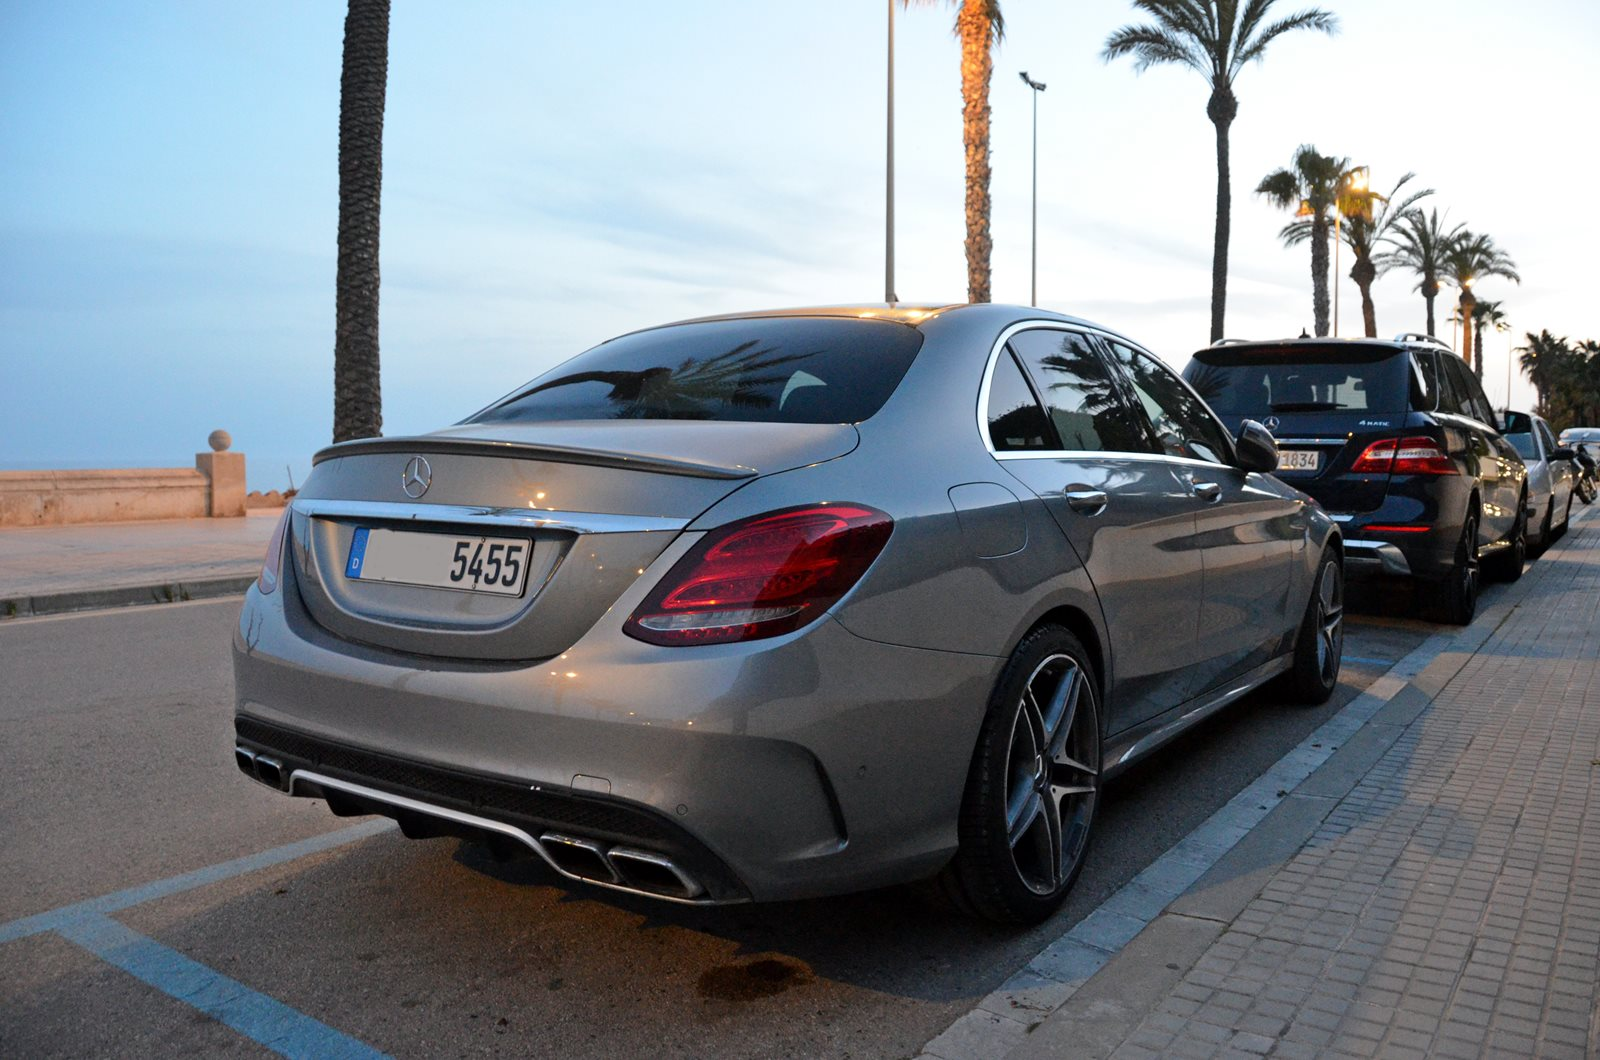 Mercedes Amg C63 W205 Supercars All Day Exotic Cars